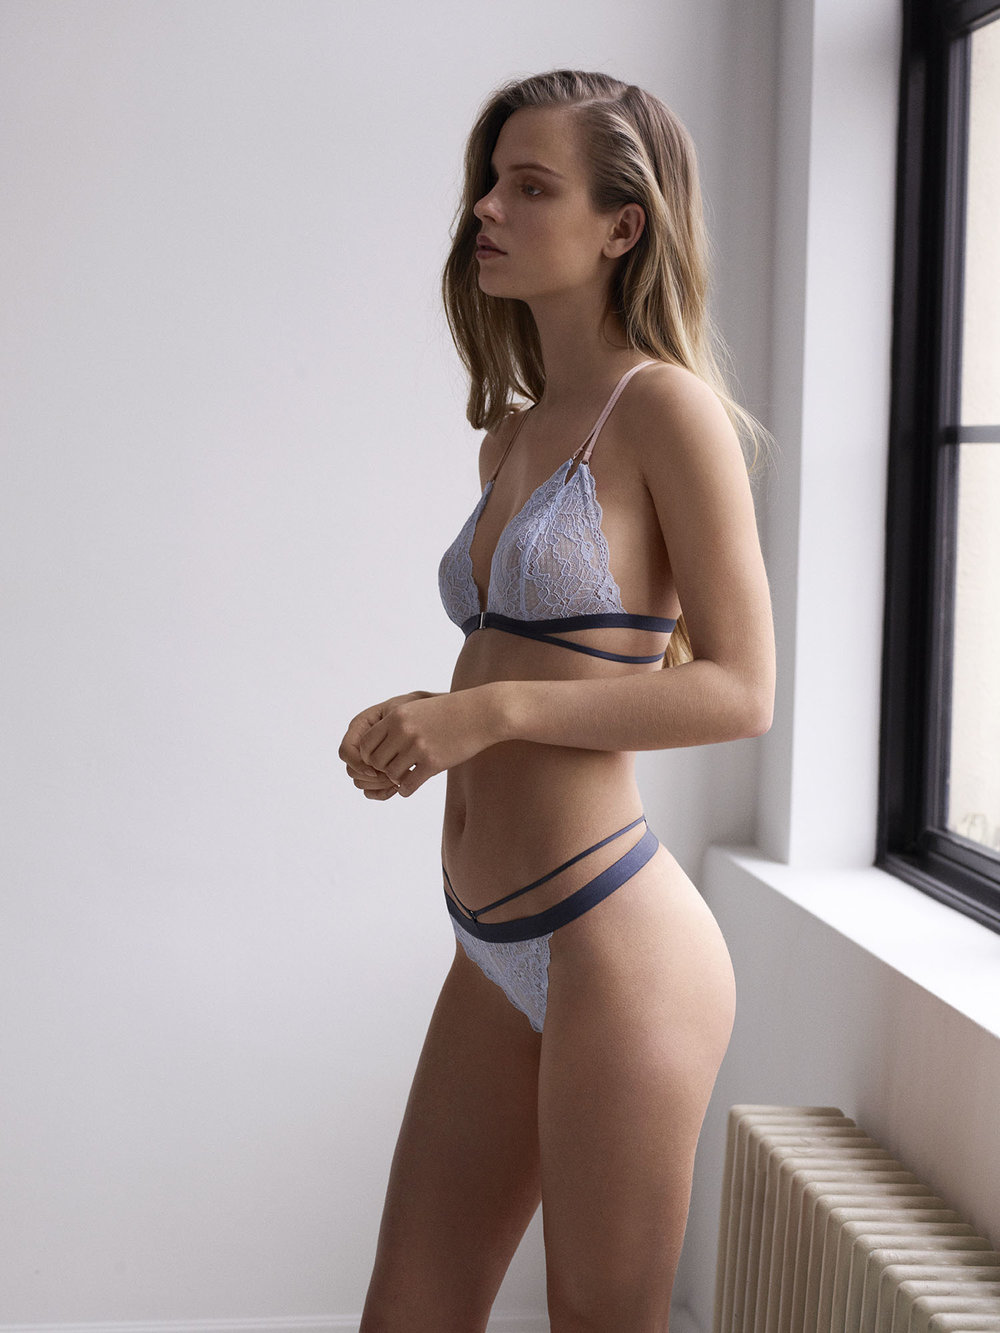 together-associates-charlotte-hadden-Topshop Lingerie-02.jpg